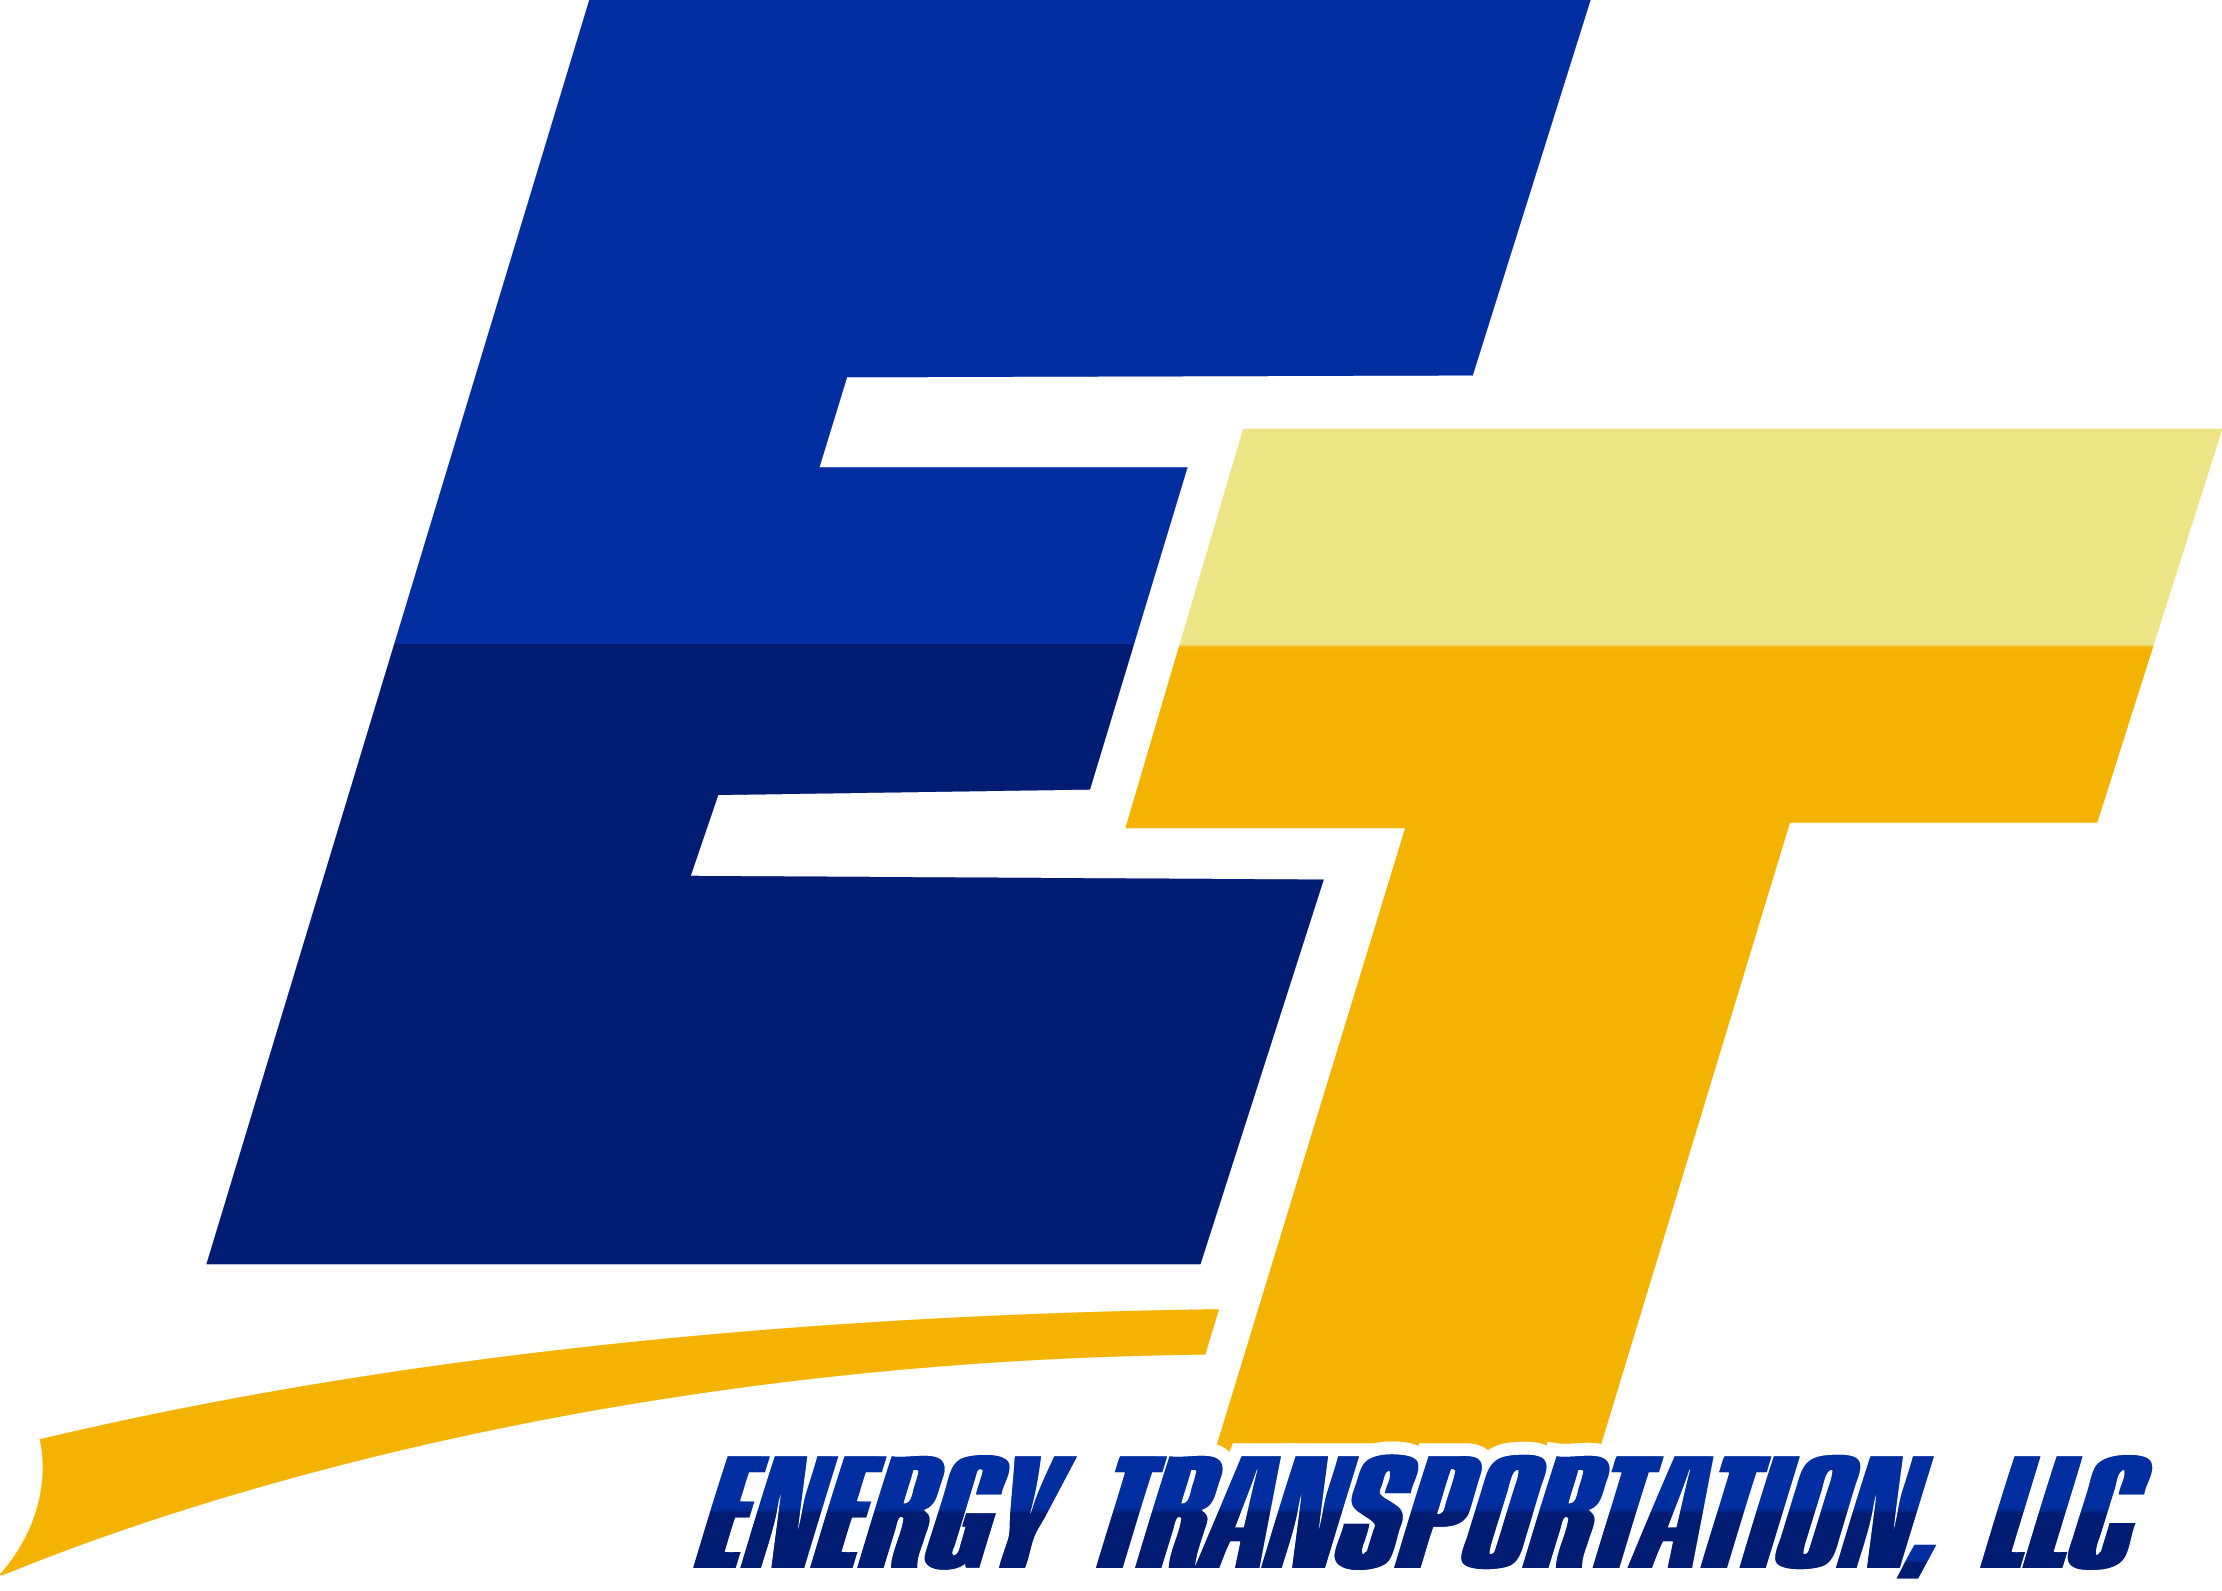 Energy Transportation, LLC